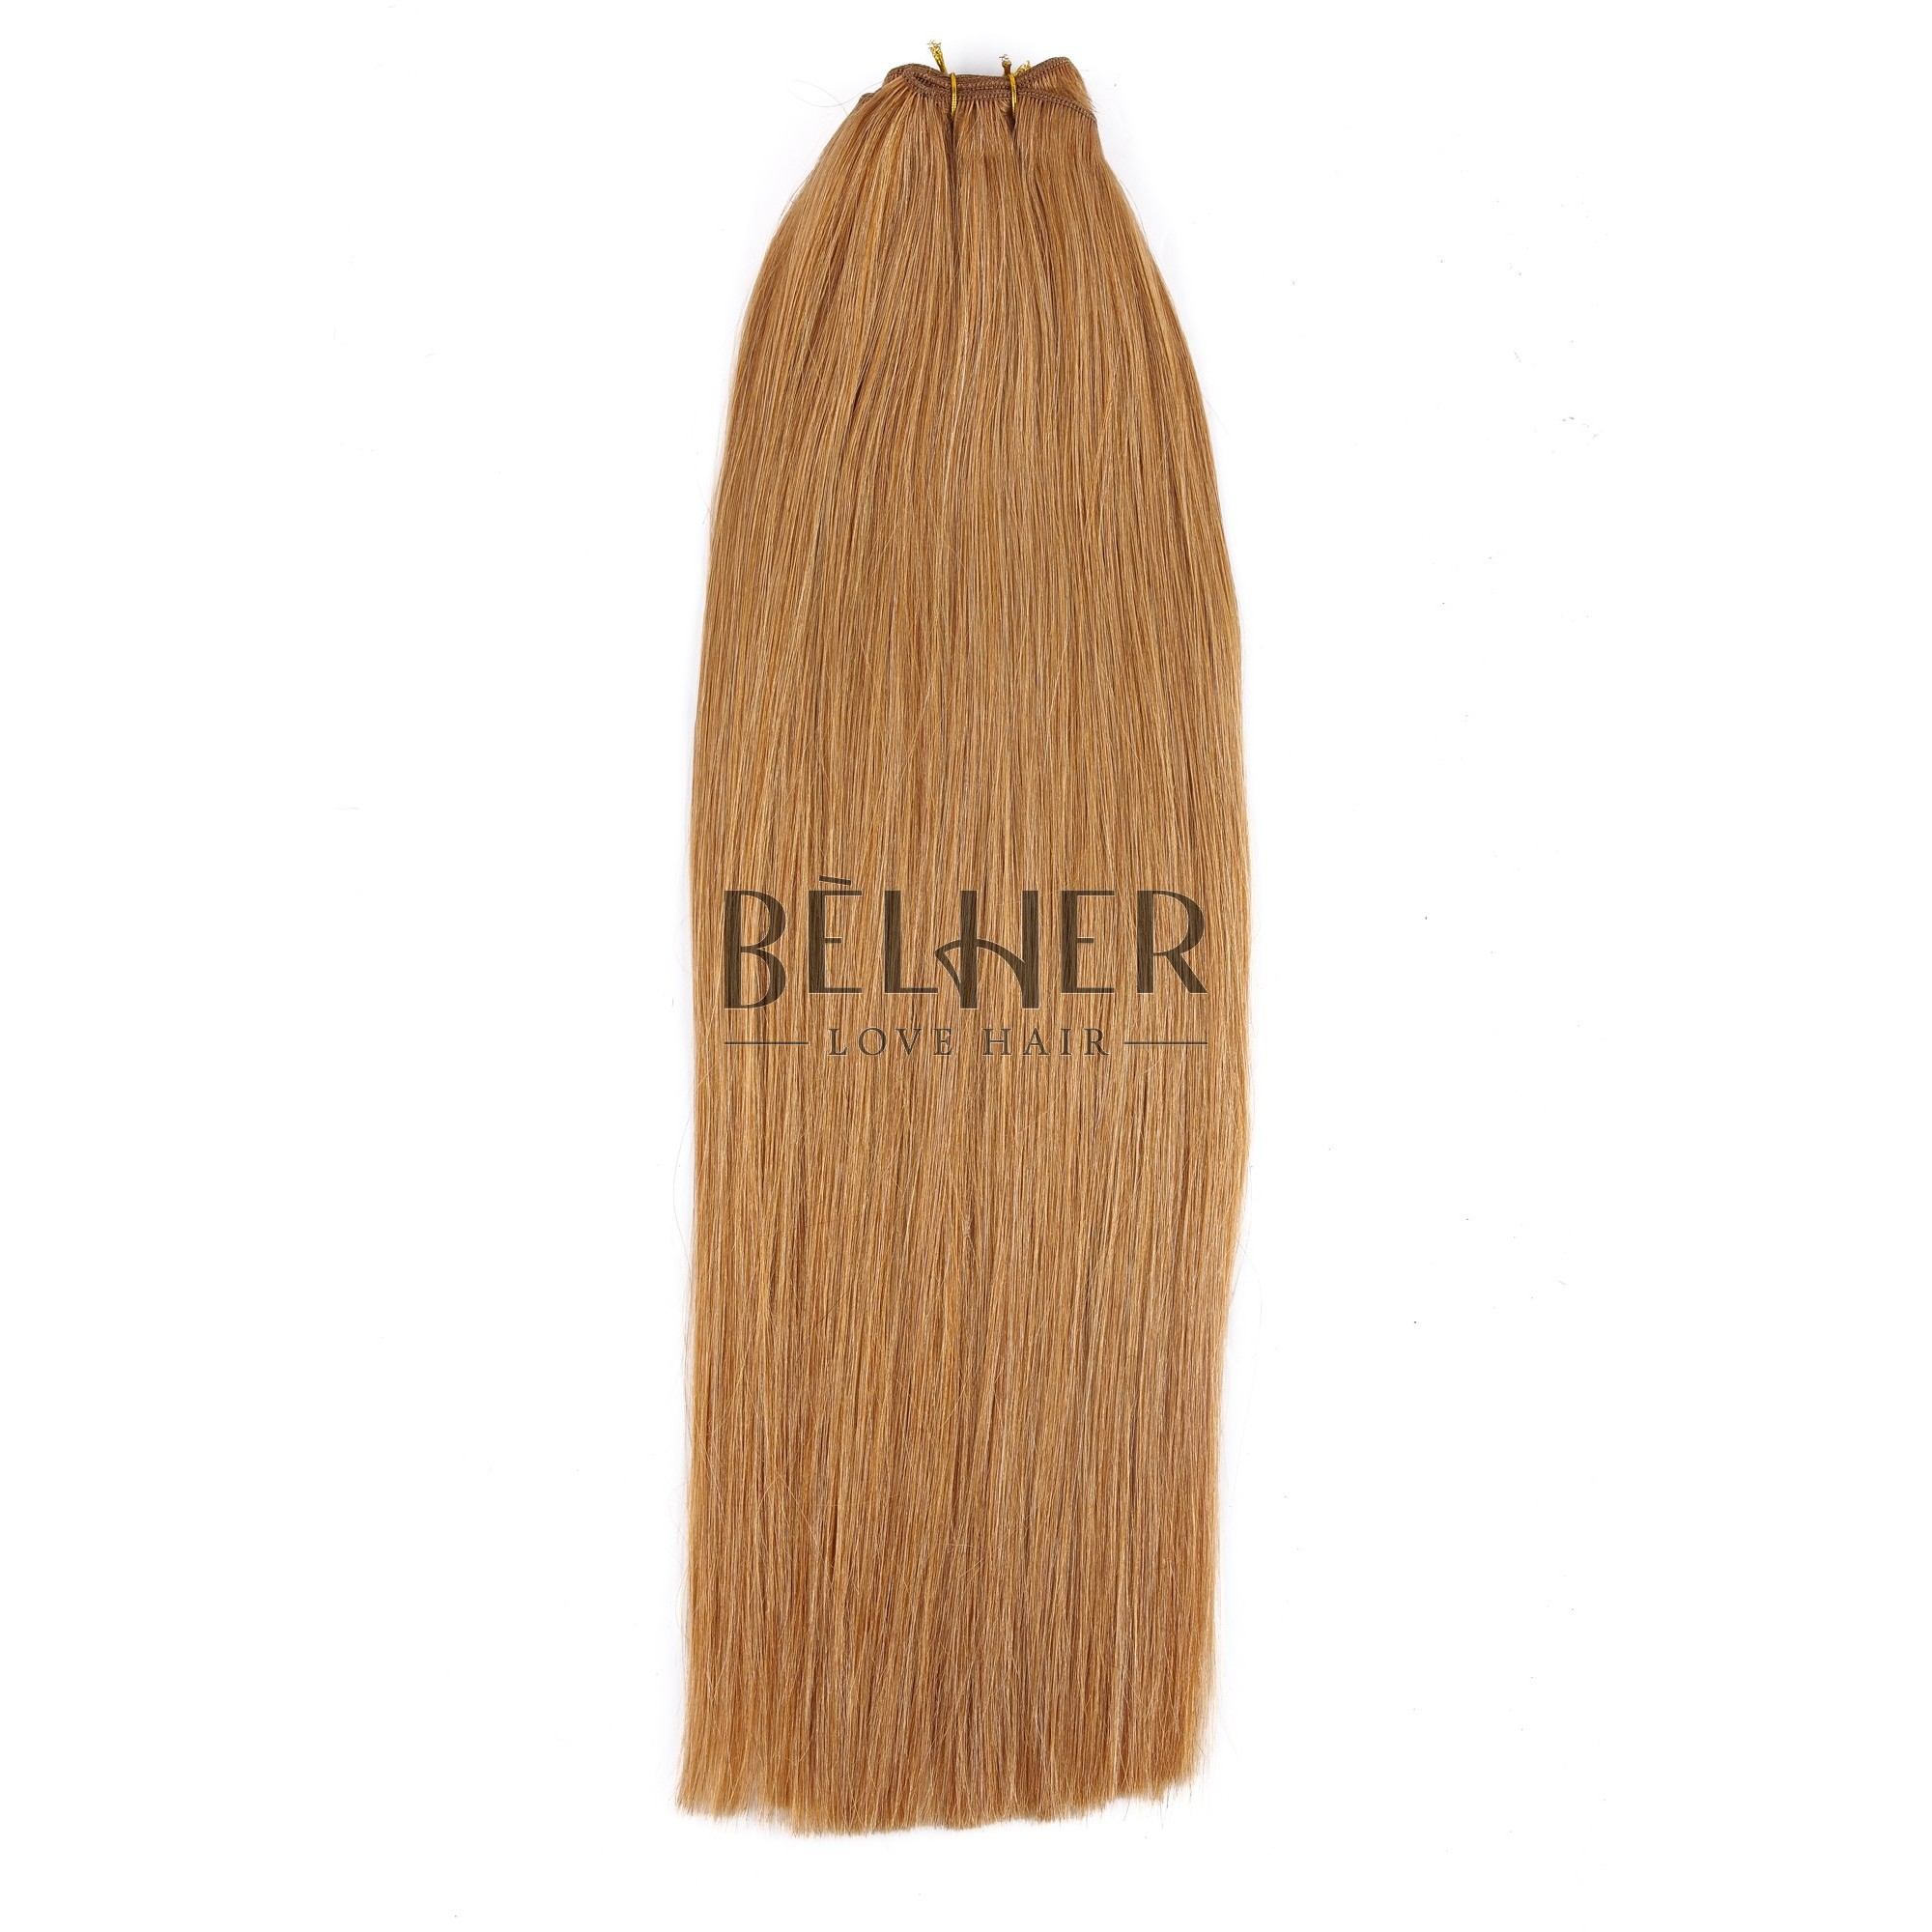 Extensii Cusute Deluxe Blond Miere